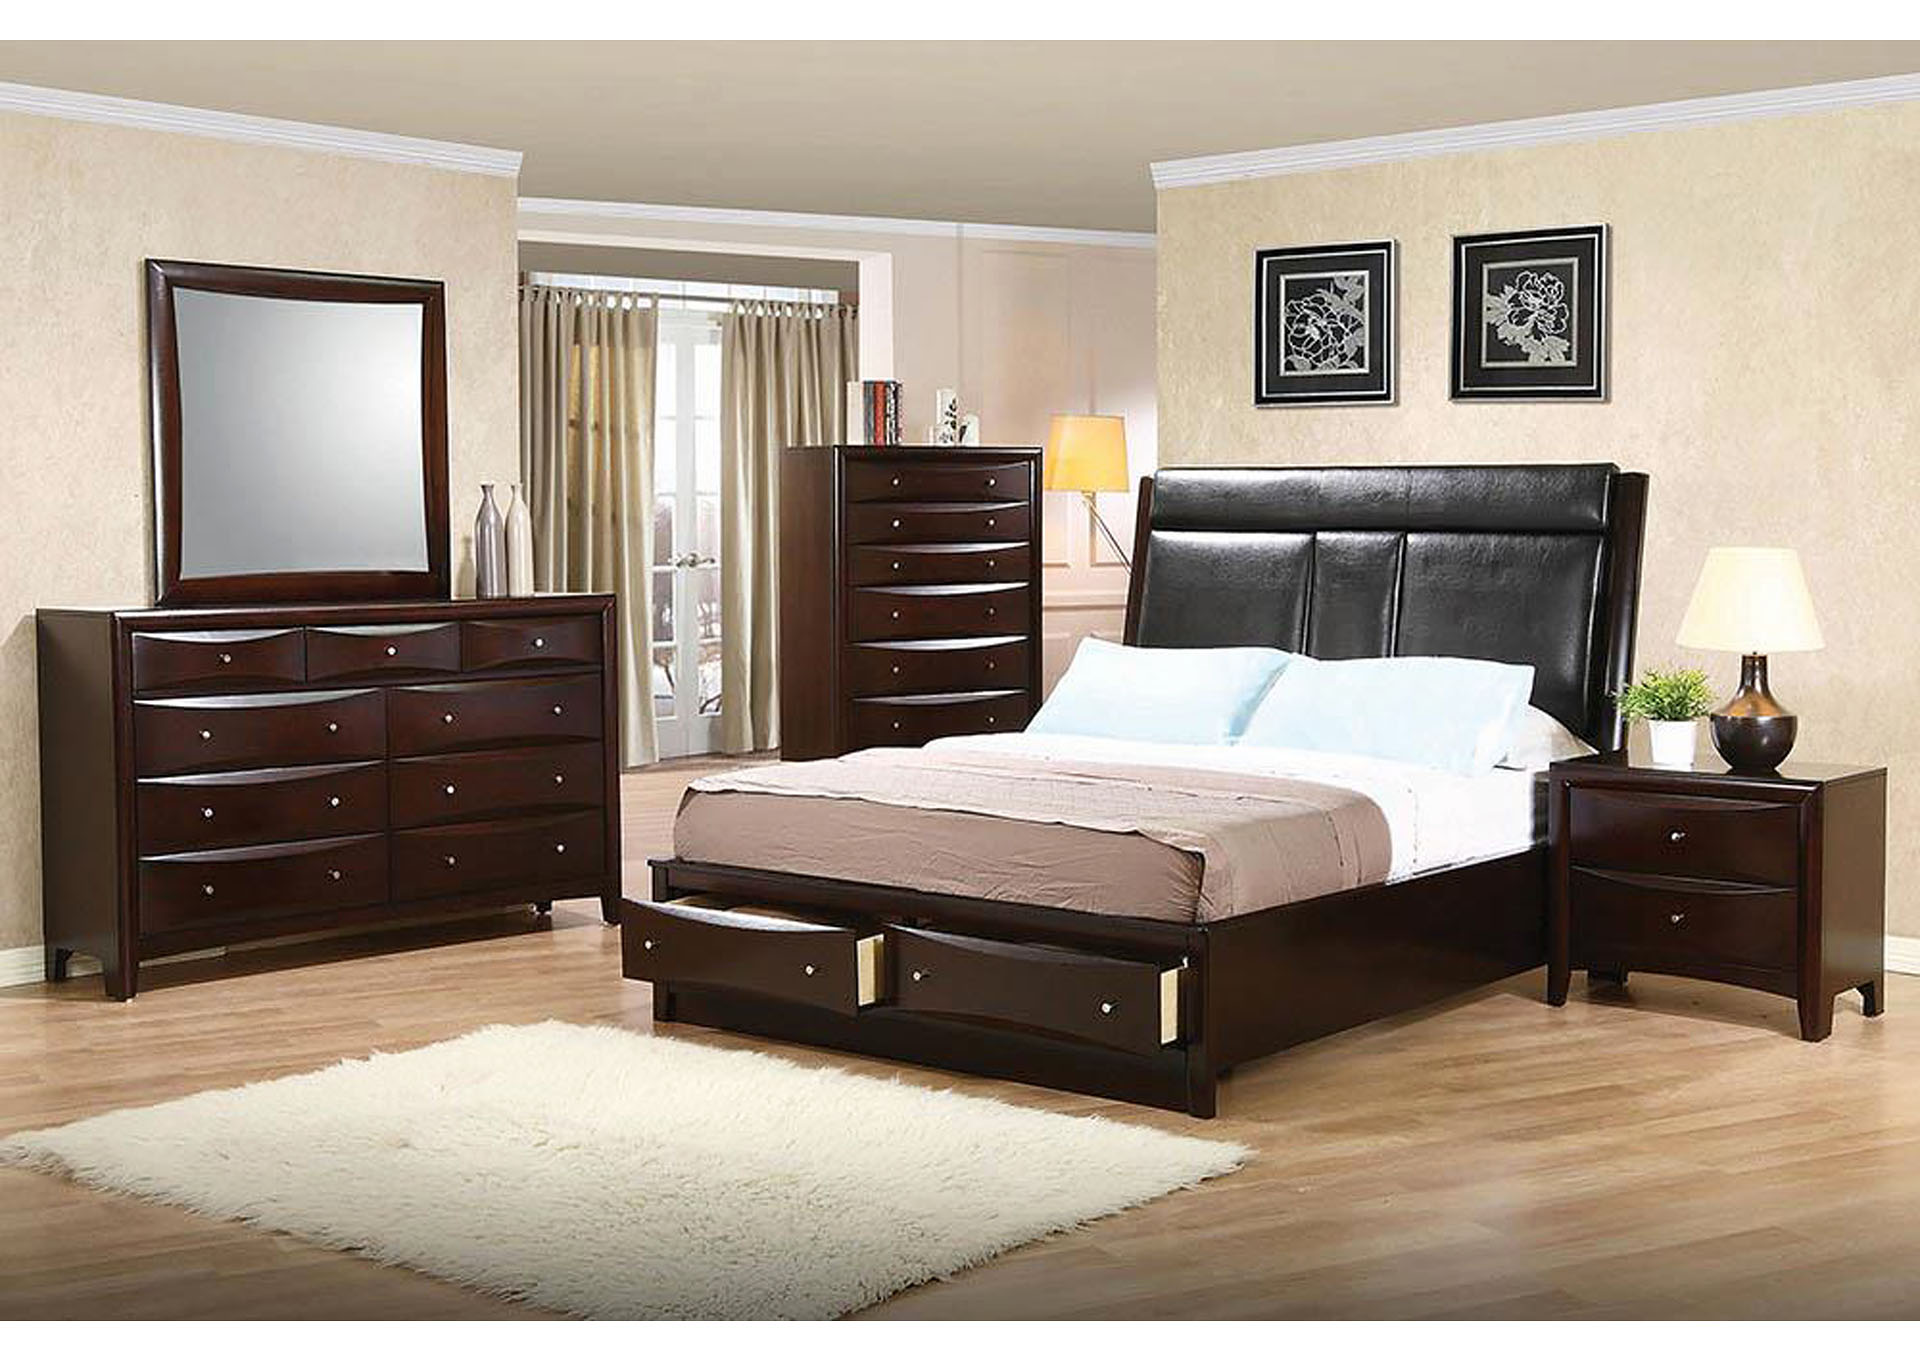 Phoenix Black & Cappuccino California King Bed,Coaster Furniture